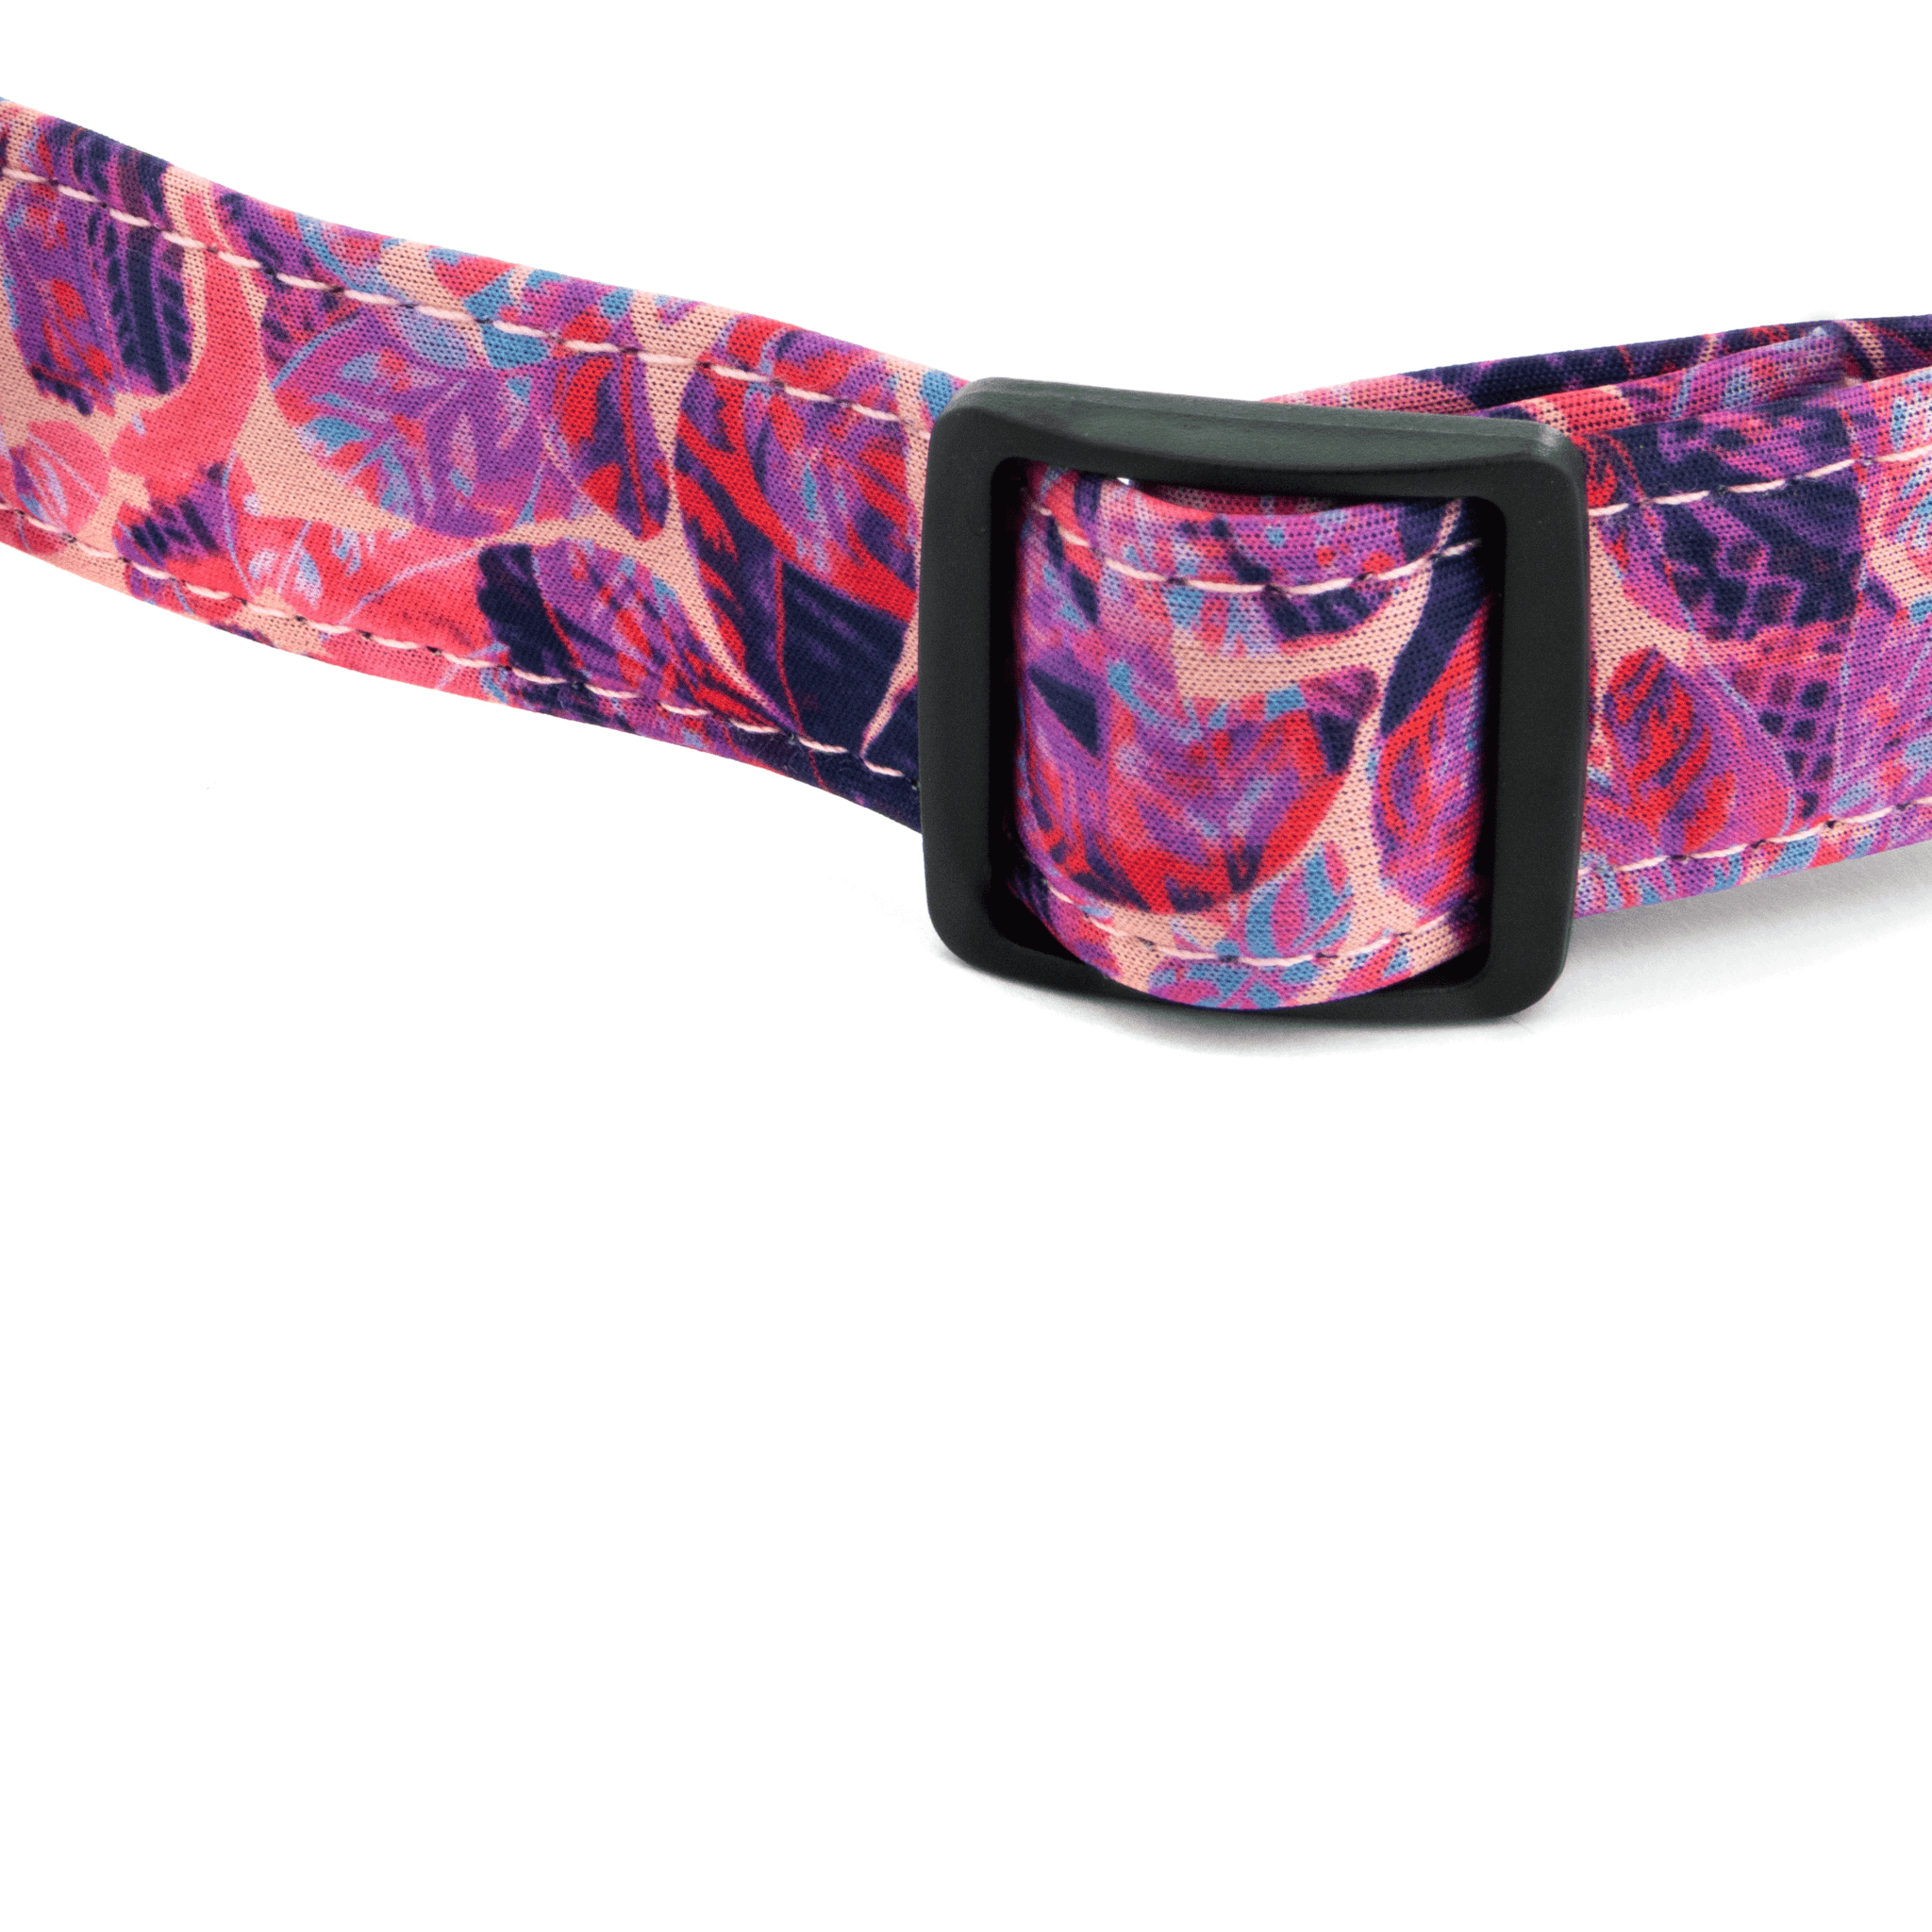 Bingin Dog 'Hanalei' waterproof dog collars; neoprene detail view. Pink hibiscus print with accents of bright blue and orange.